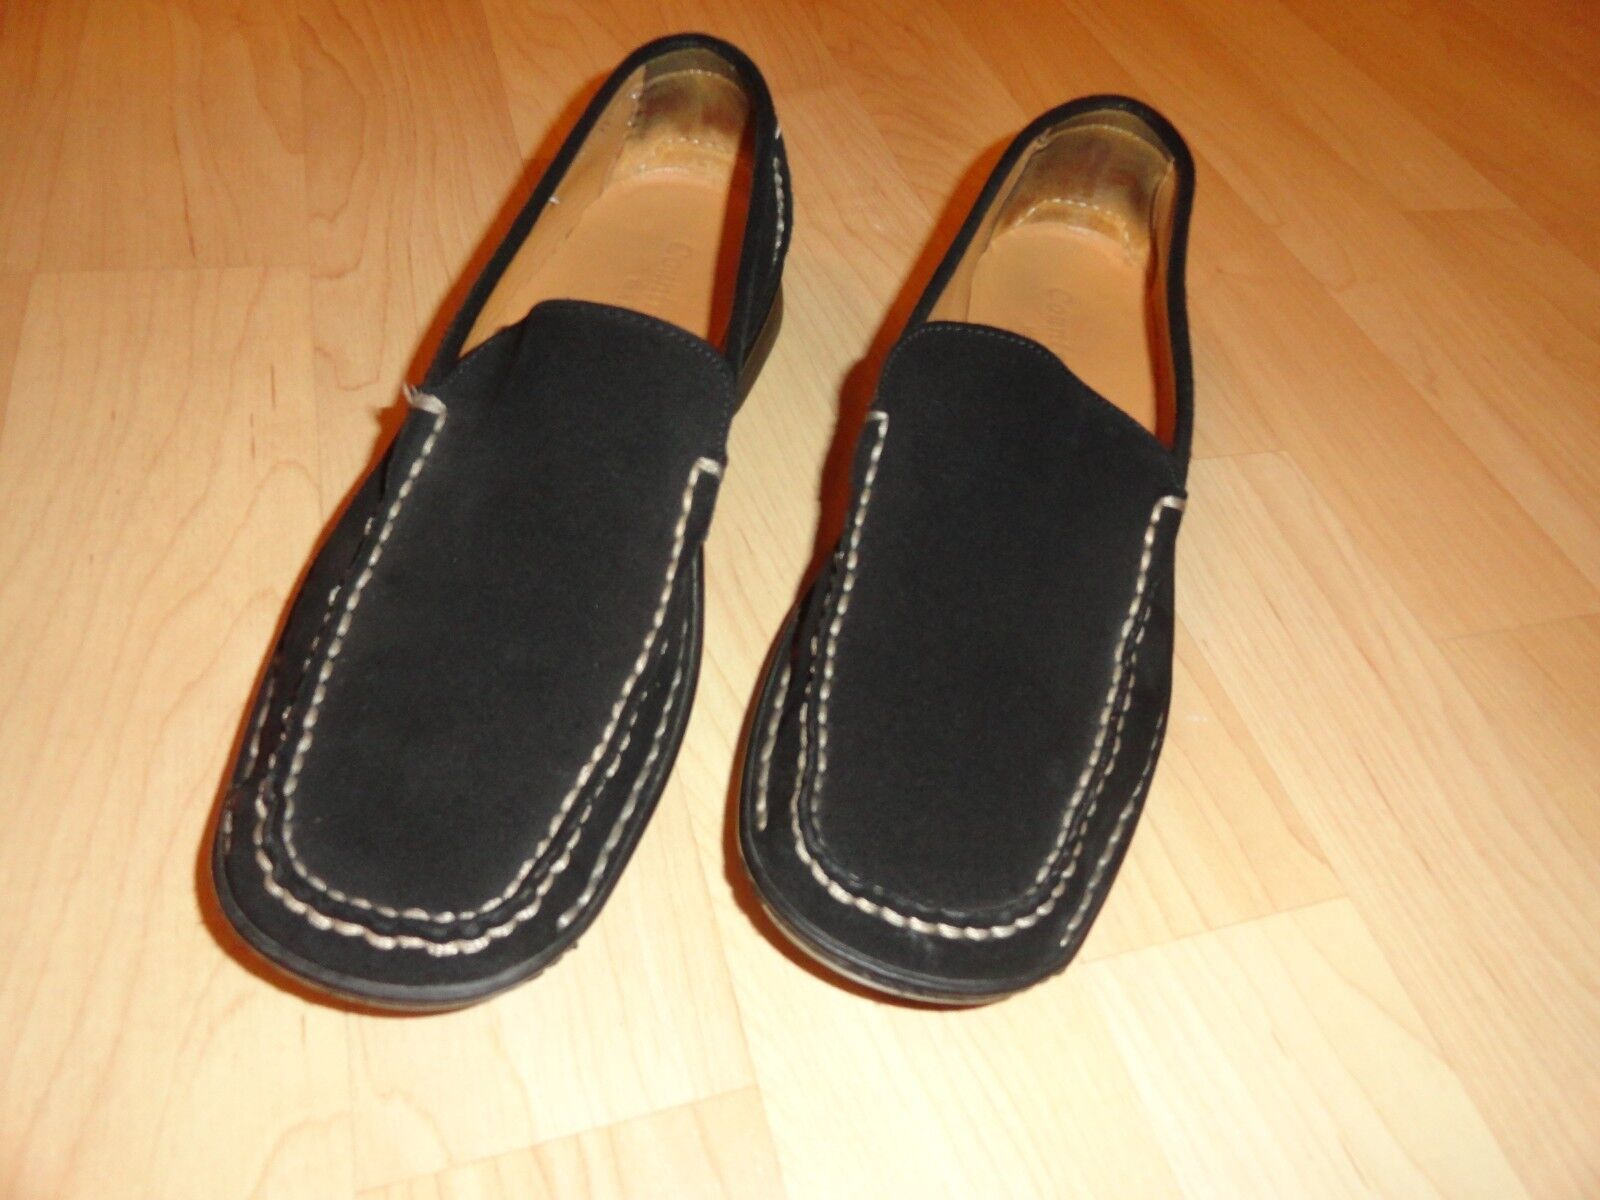 Country Shop, Mocasines Negro, Negro, Negro, tamaño 9.5 en mujeres, Italiano Made  mas barato